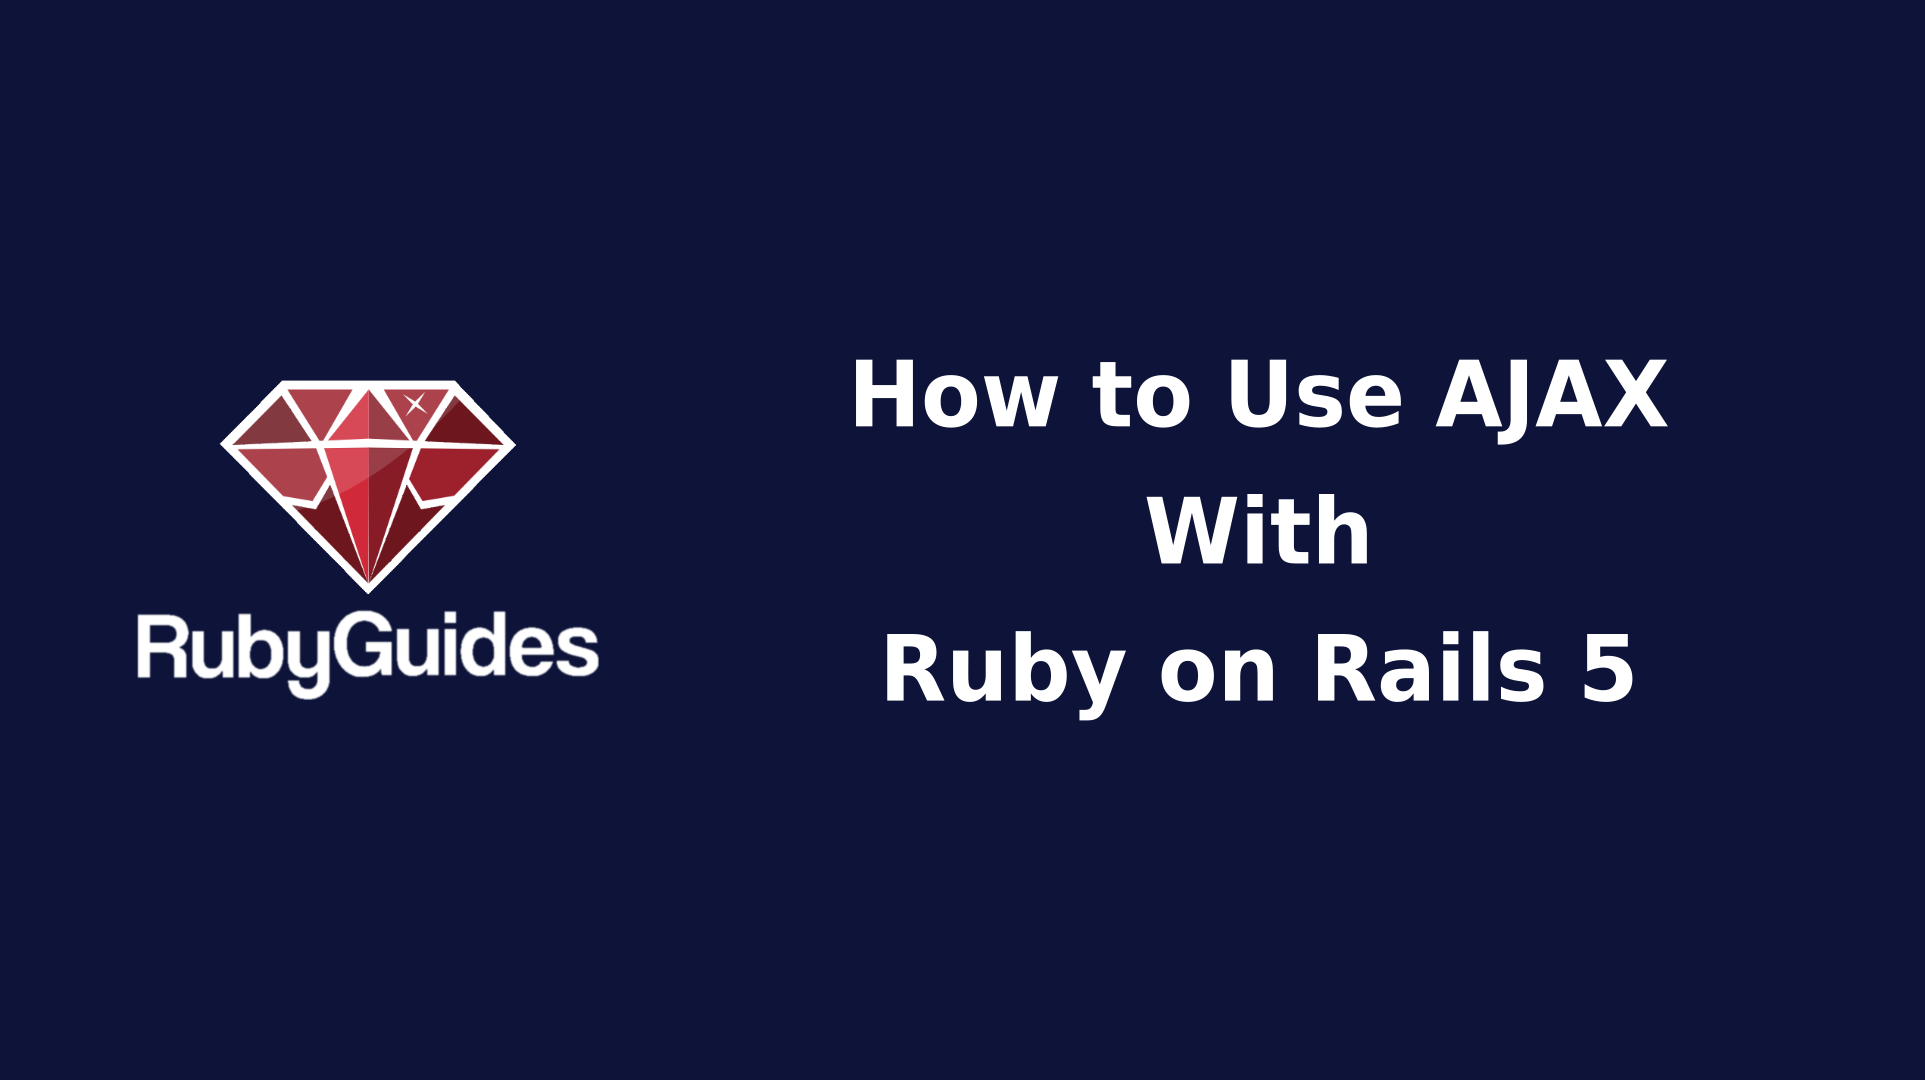 How to Use AJAX With Ruby on Rails 5 - RubyGuides